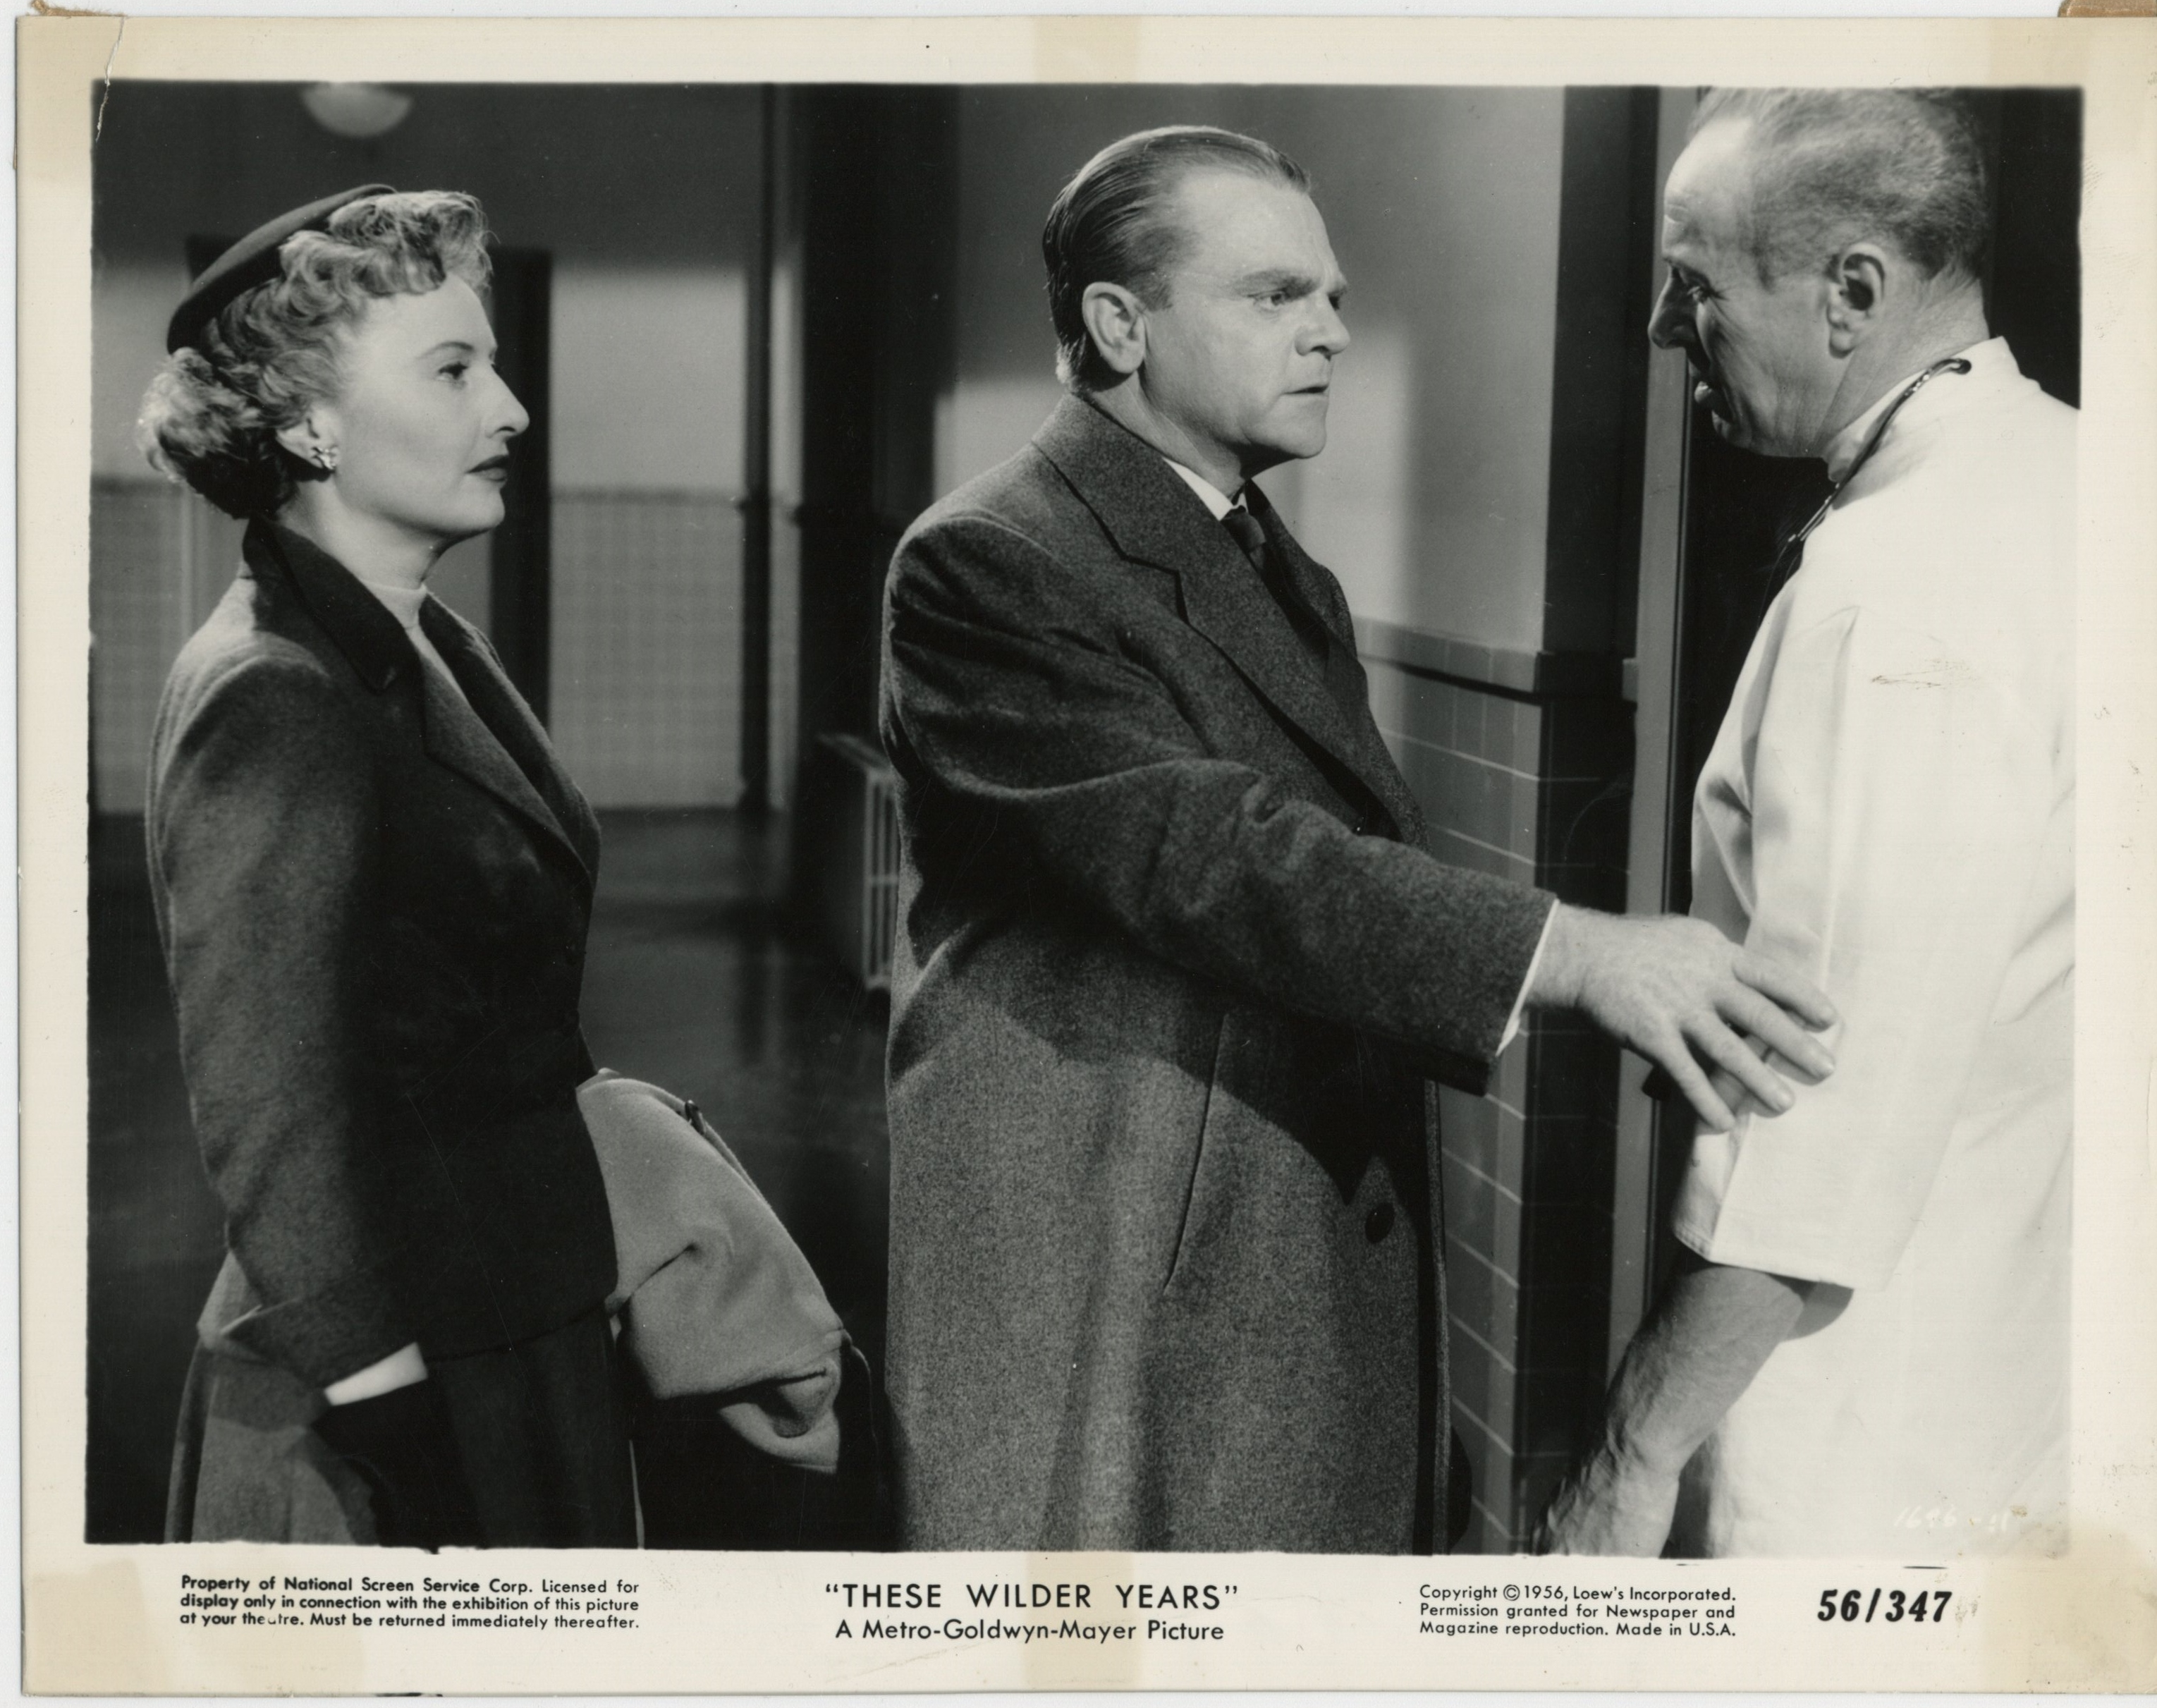 James Cagney and Barbara Stanwyck in These Wilder Years (1956)